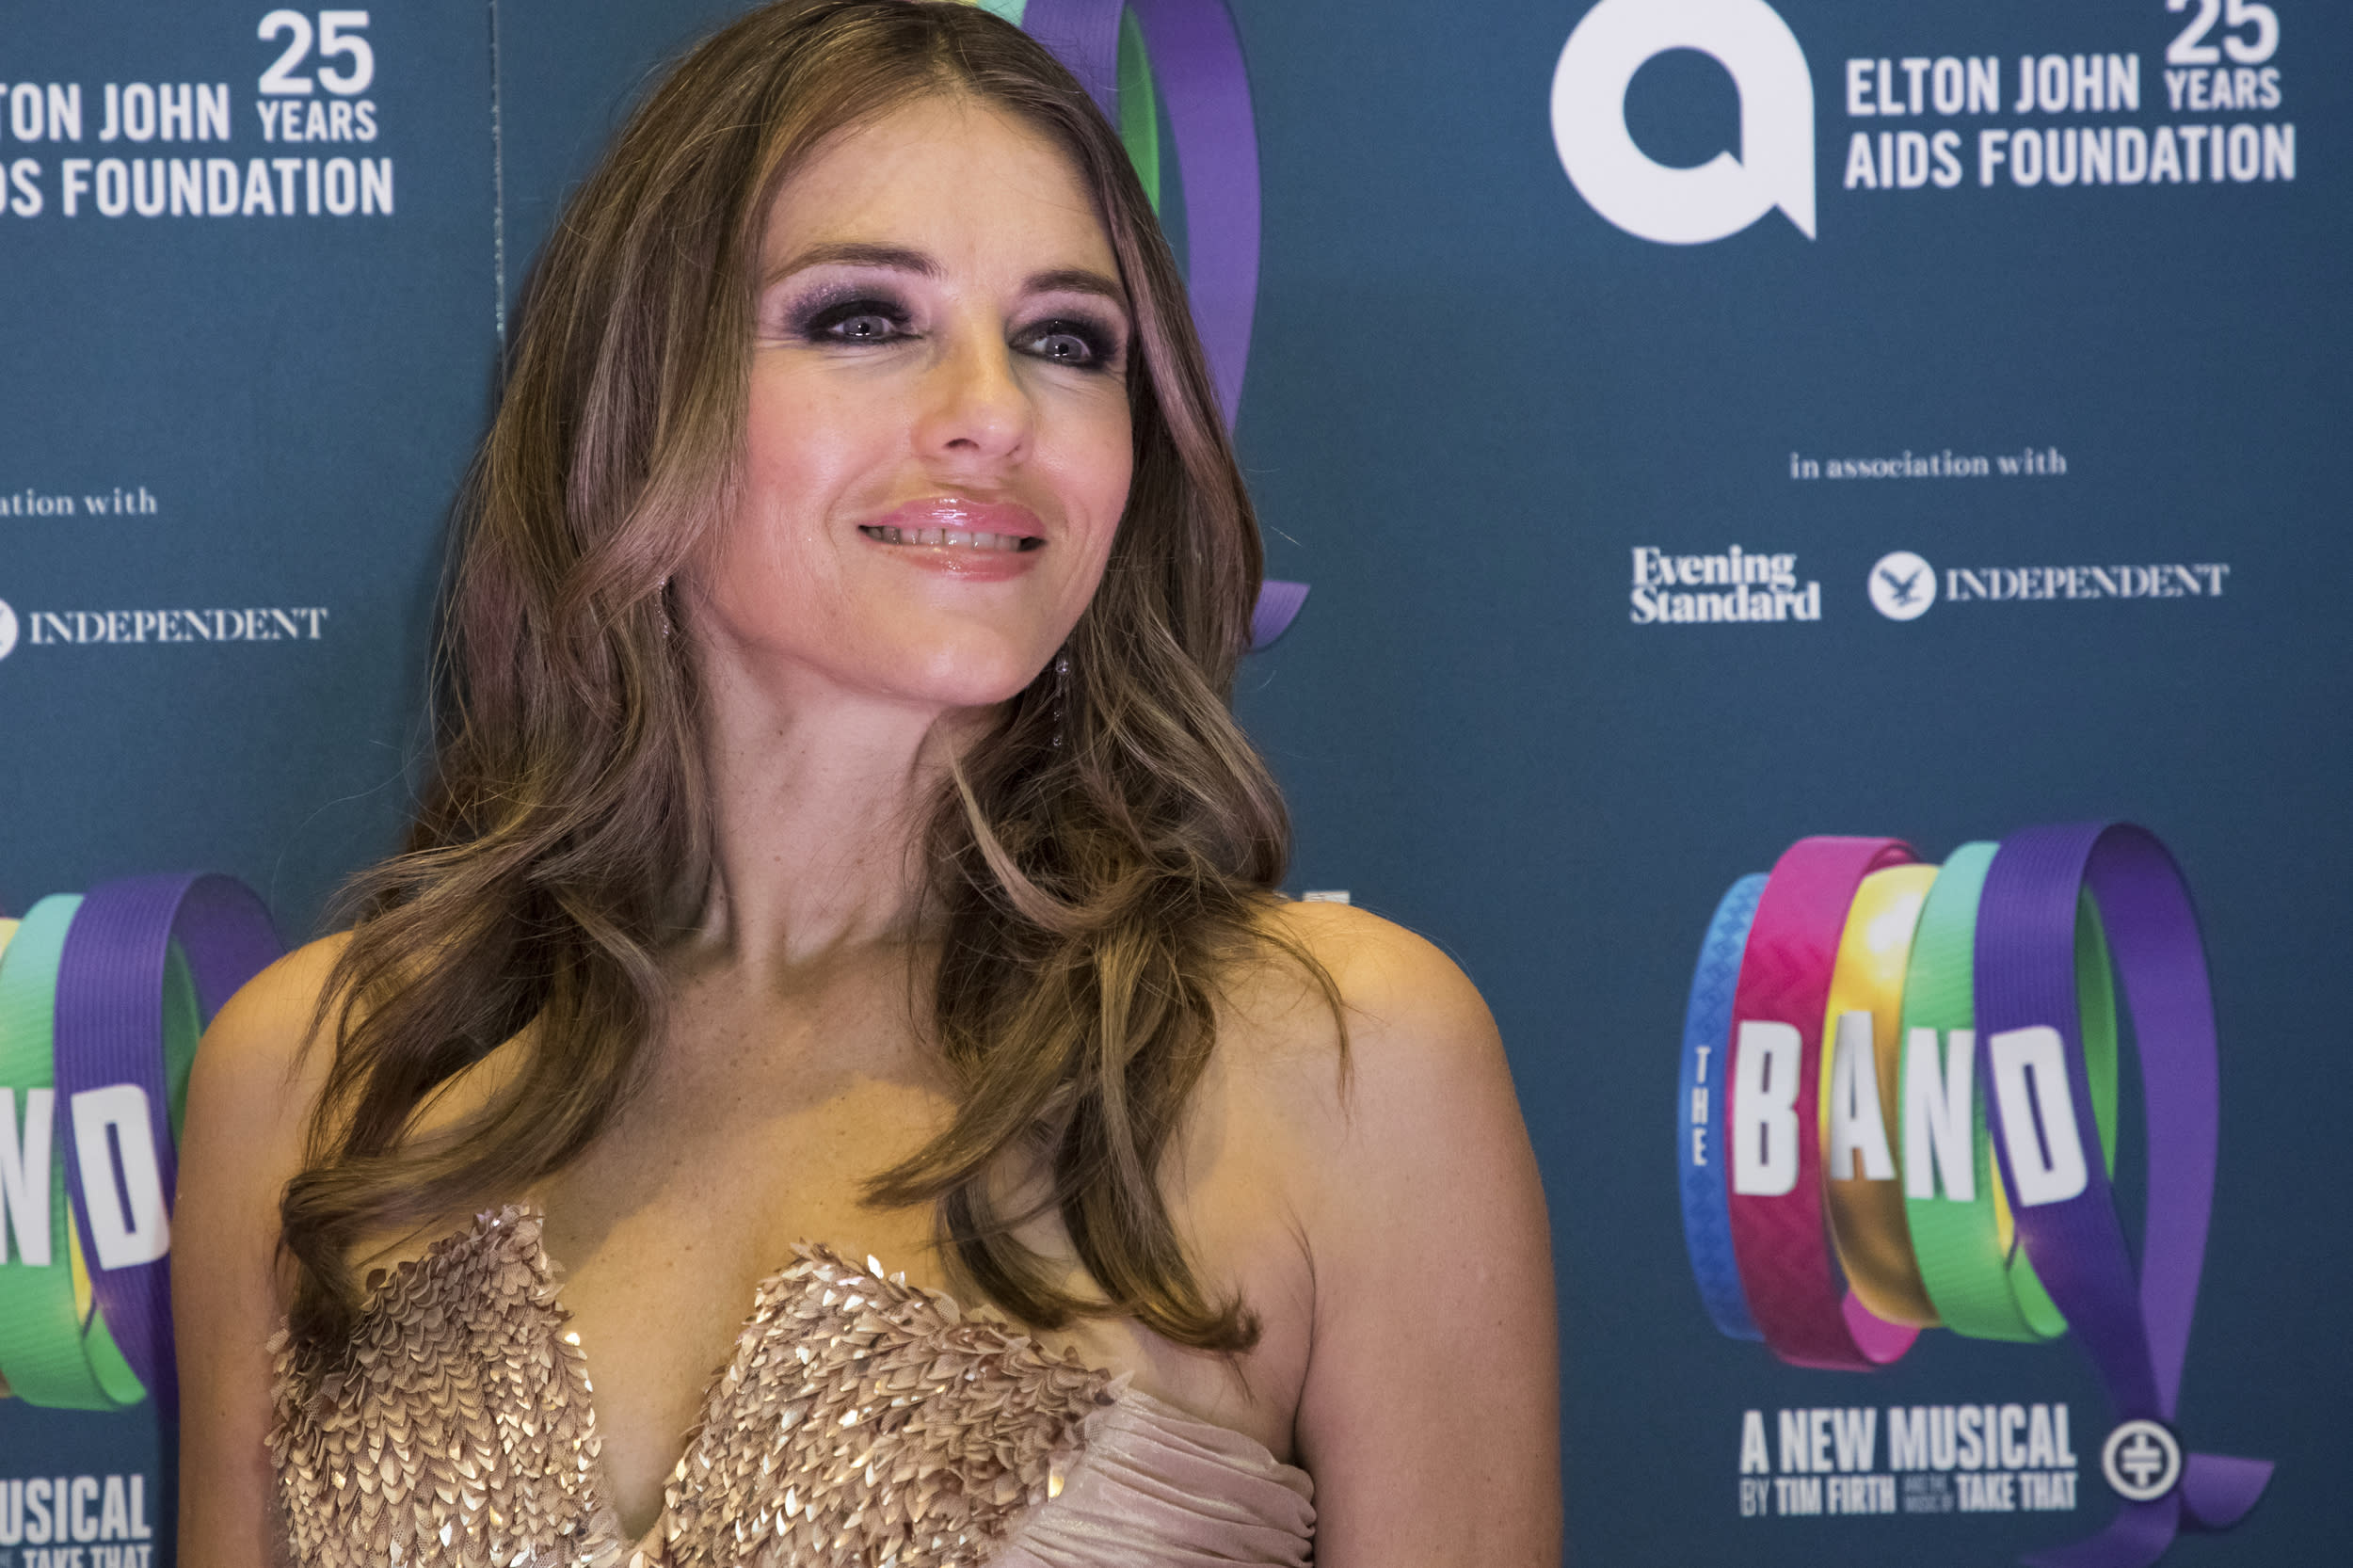 Elizabeth Hurley poses for photographers upon arrival at the premiere of the musical 'The Band', in London, Tuesday, Dec. 4, 2018. (Photo by Vianney Le Caer/Invision/AP)